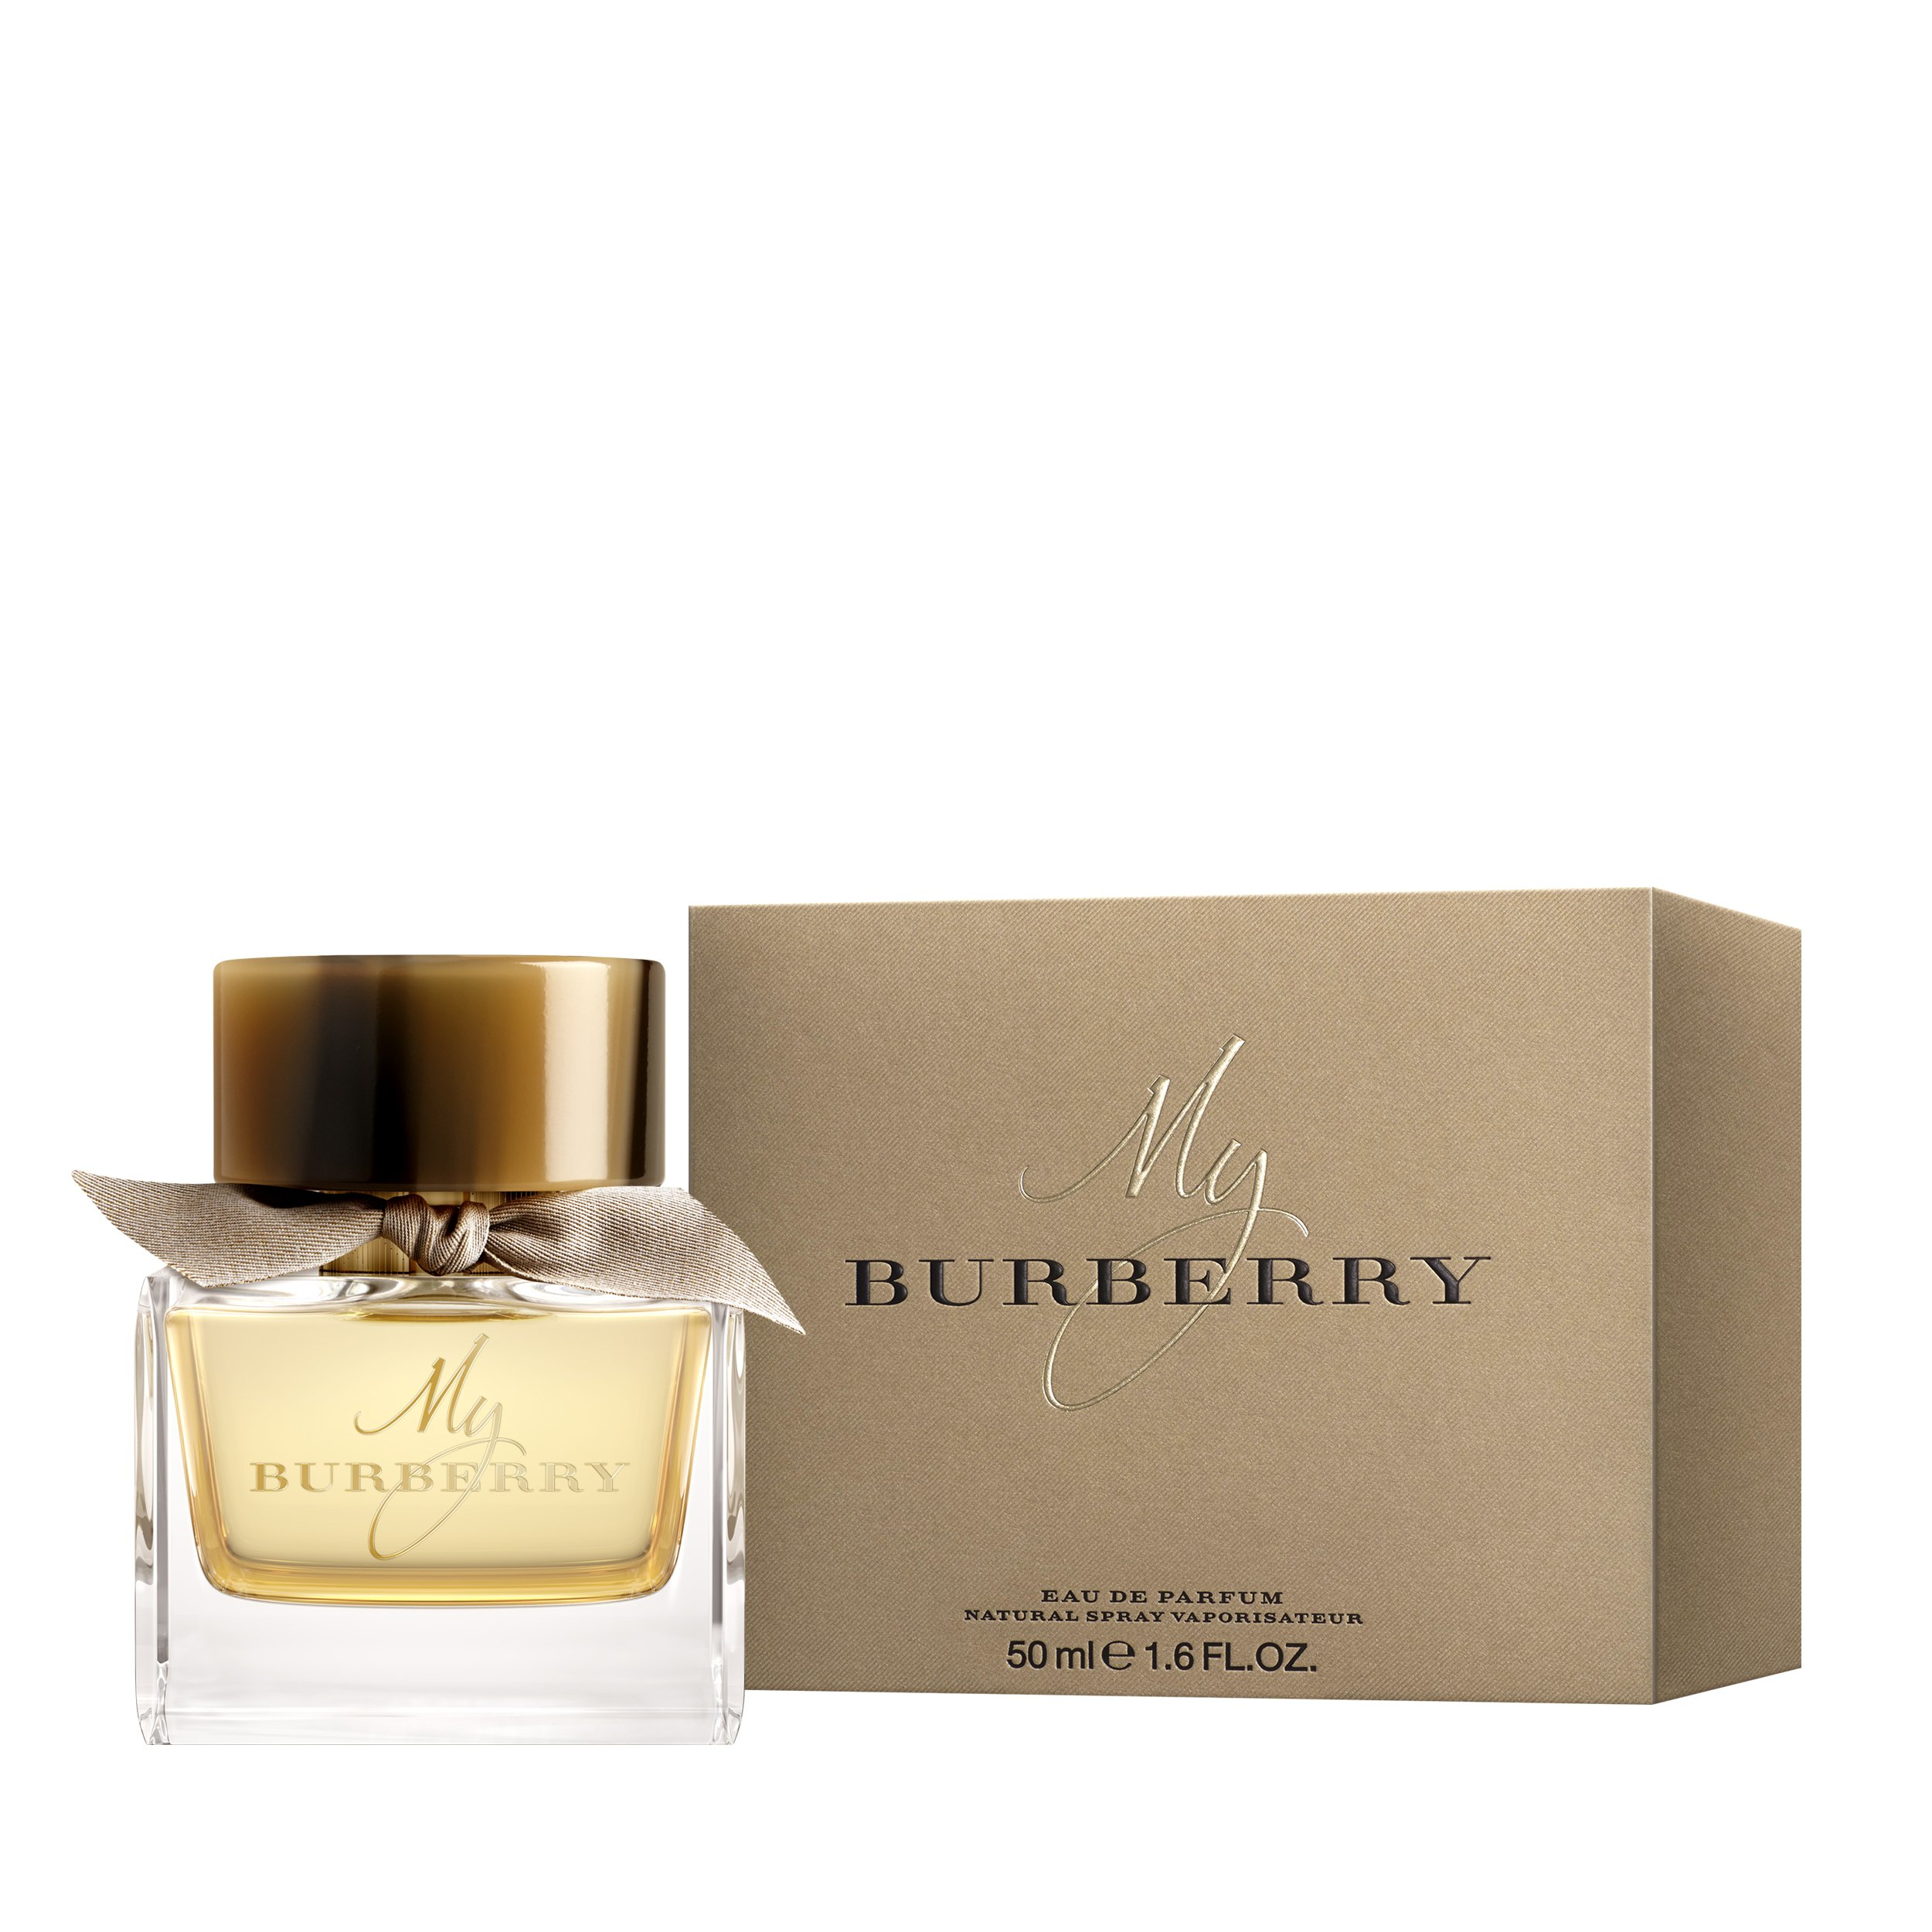 BURBERRY Burberry my burberry eau de parfum 50 ml